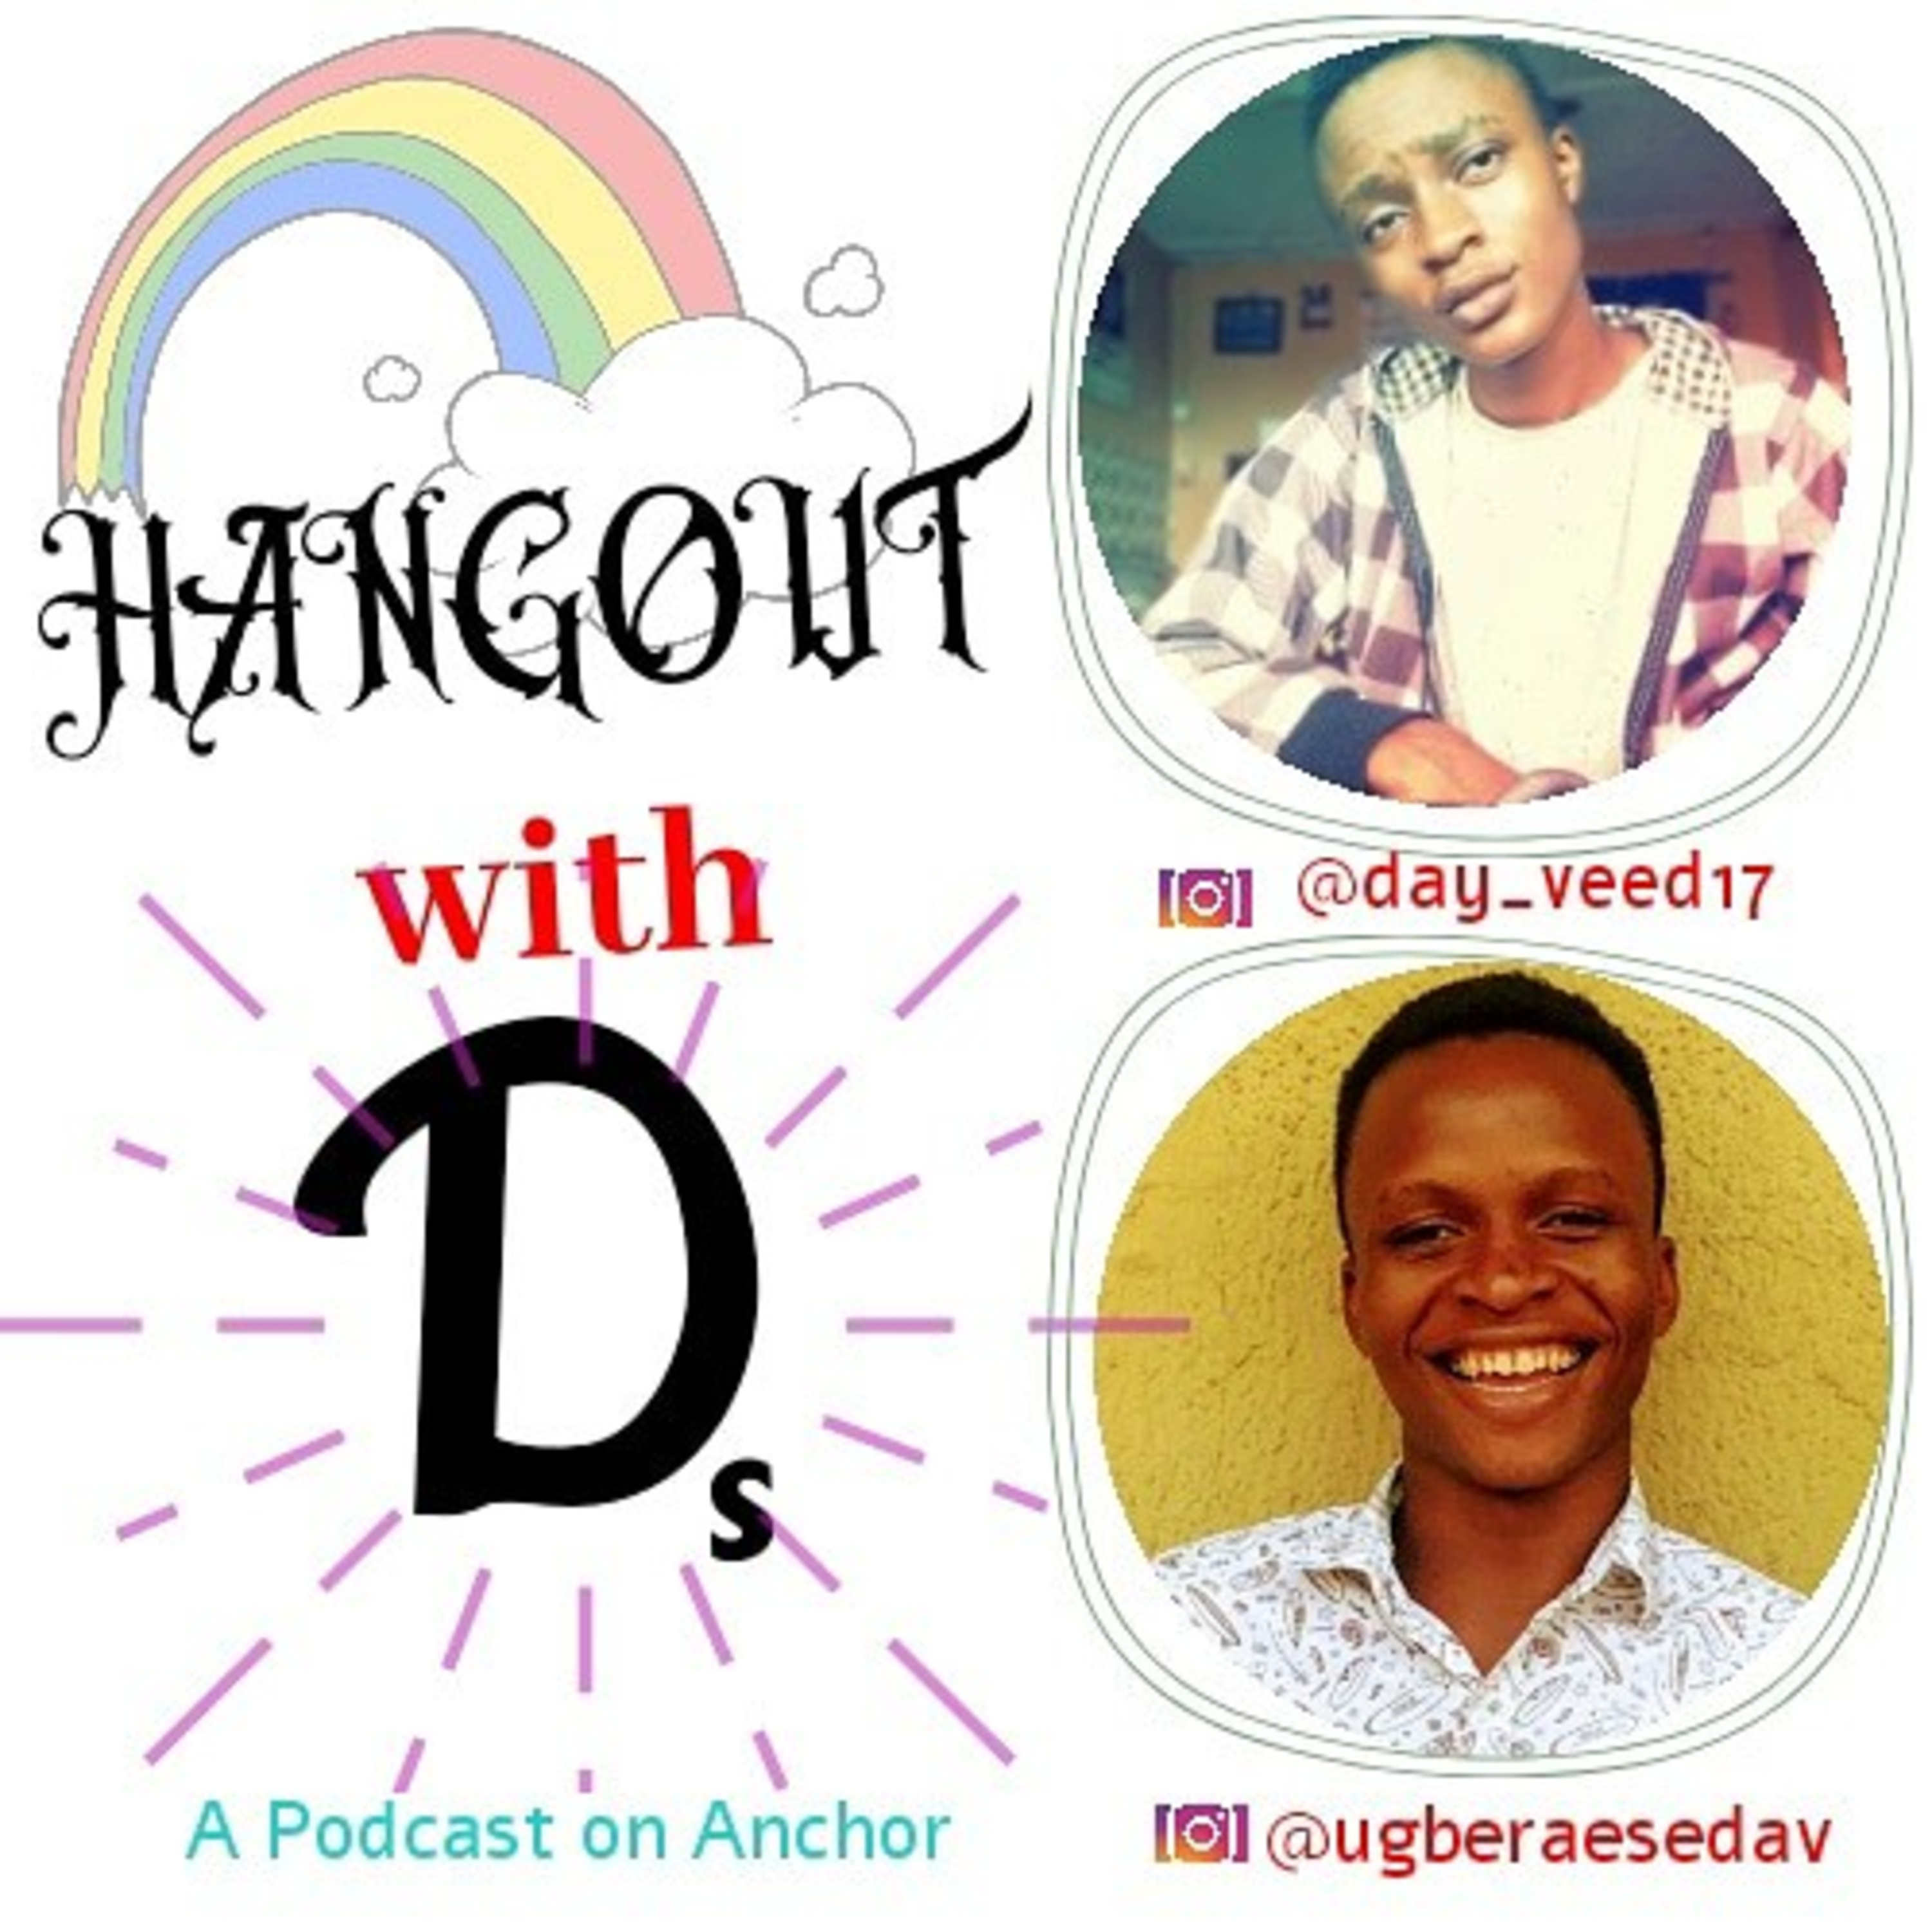 Hangout With Ds on Jamit